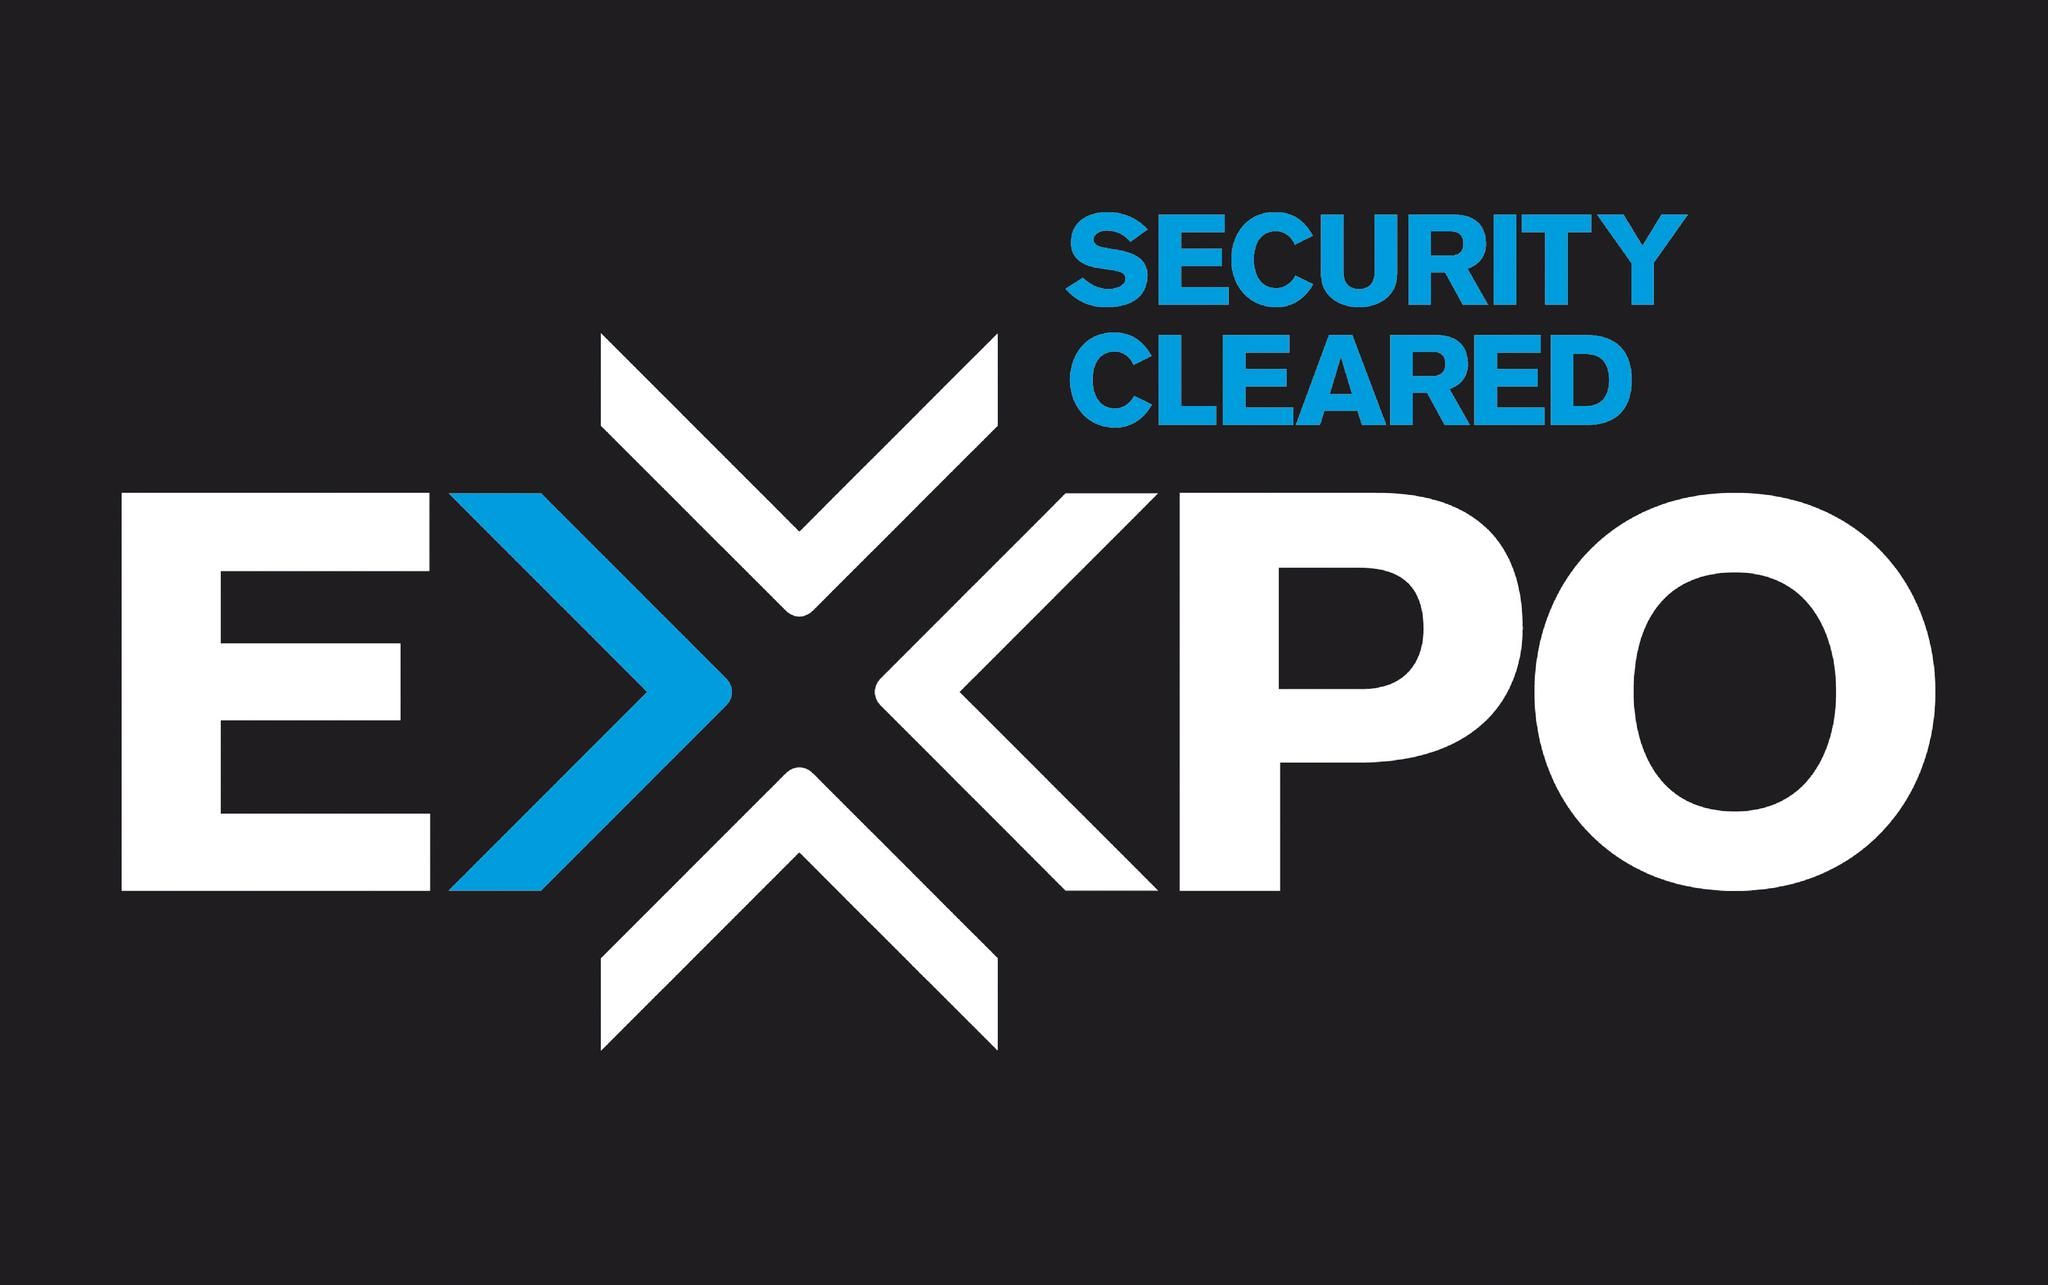 Security Cleared Expo 2021